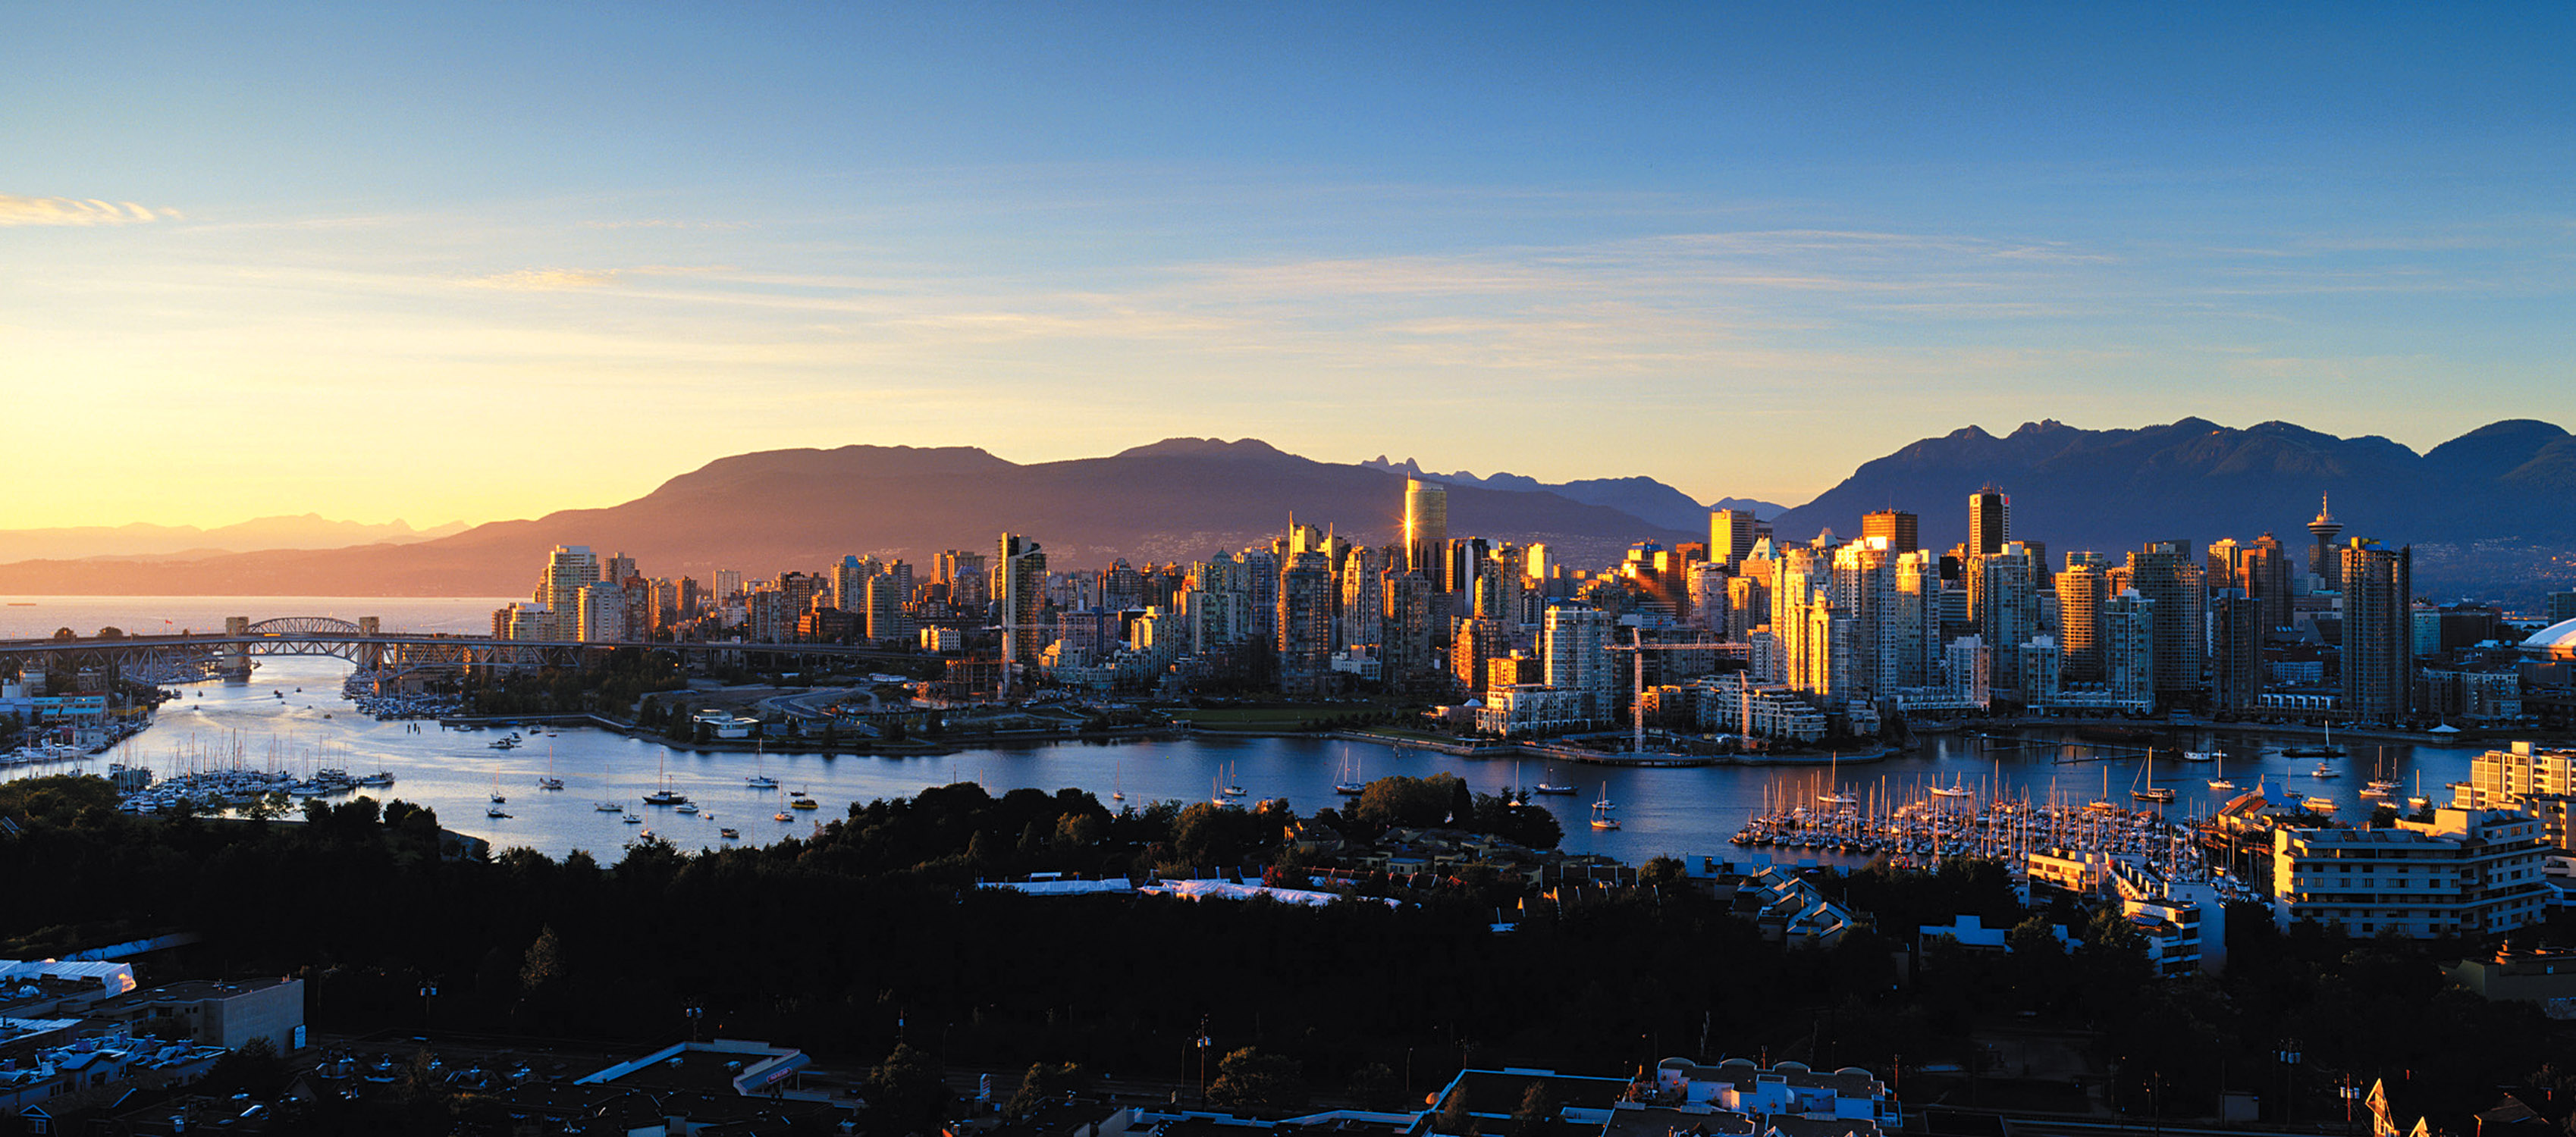 Vancouver, Canada's first city to develop a digital strategy